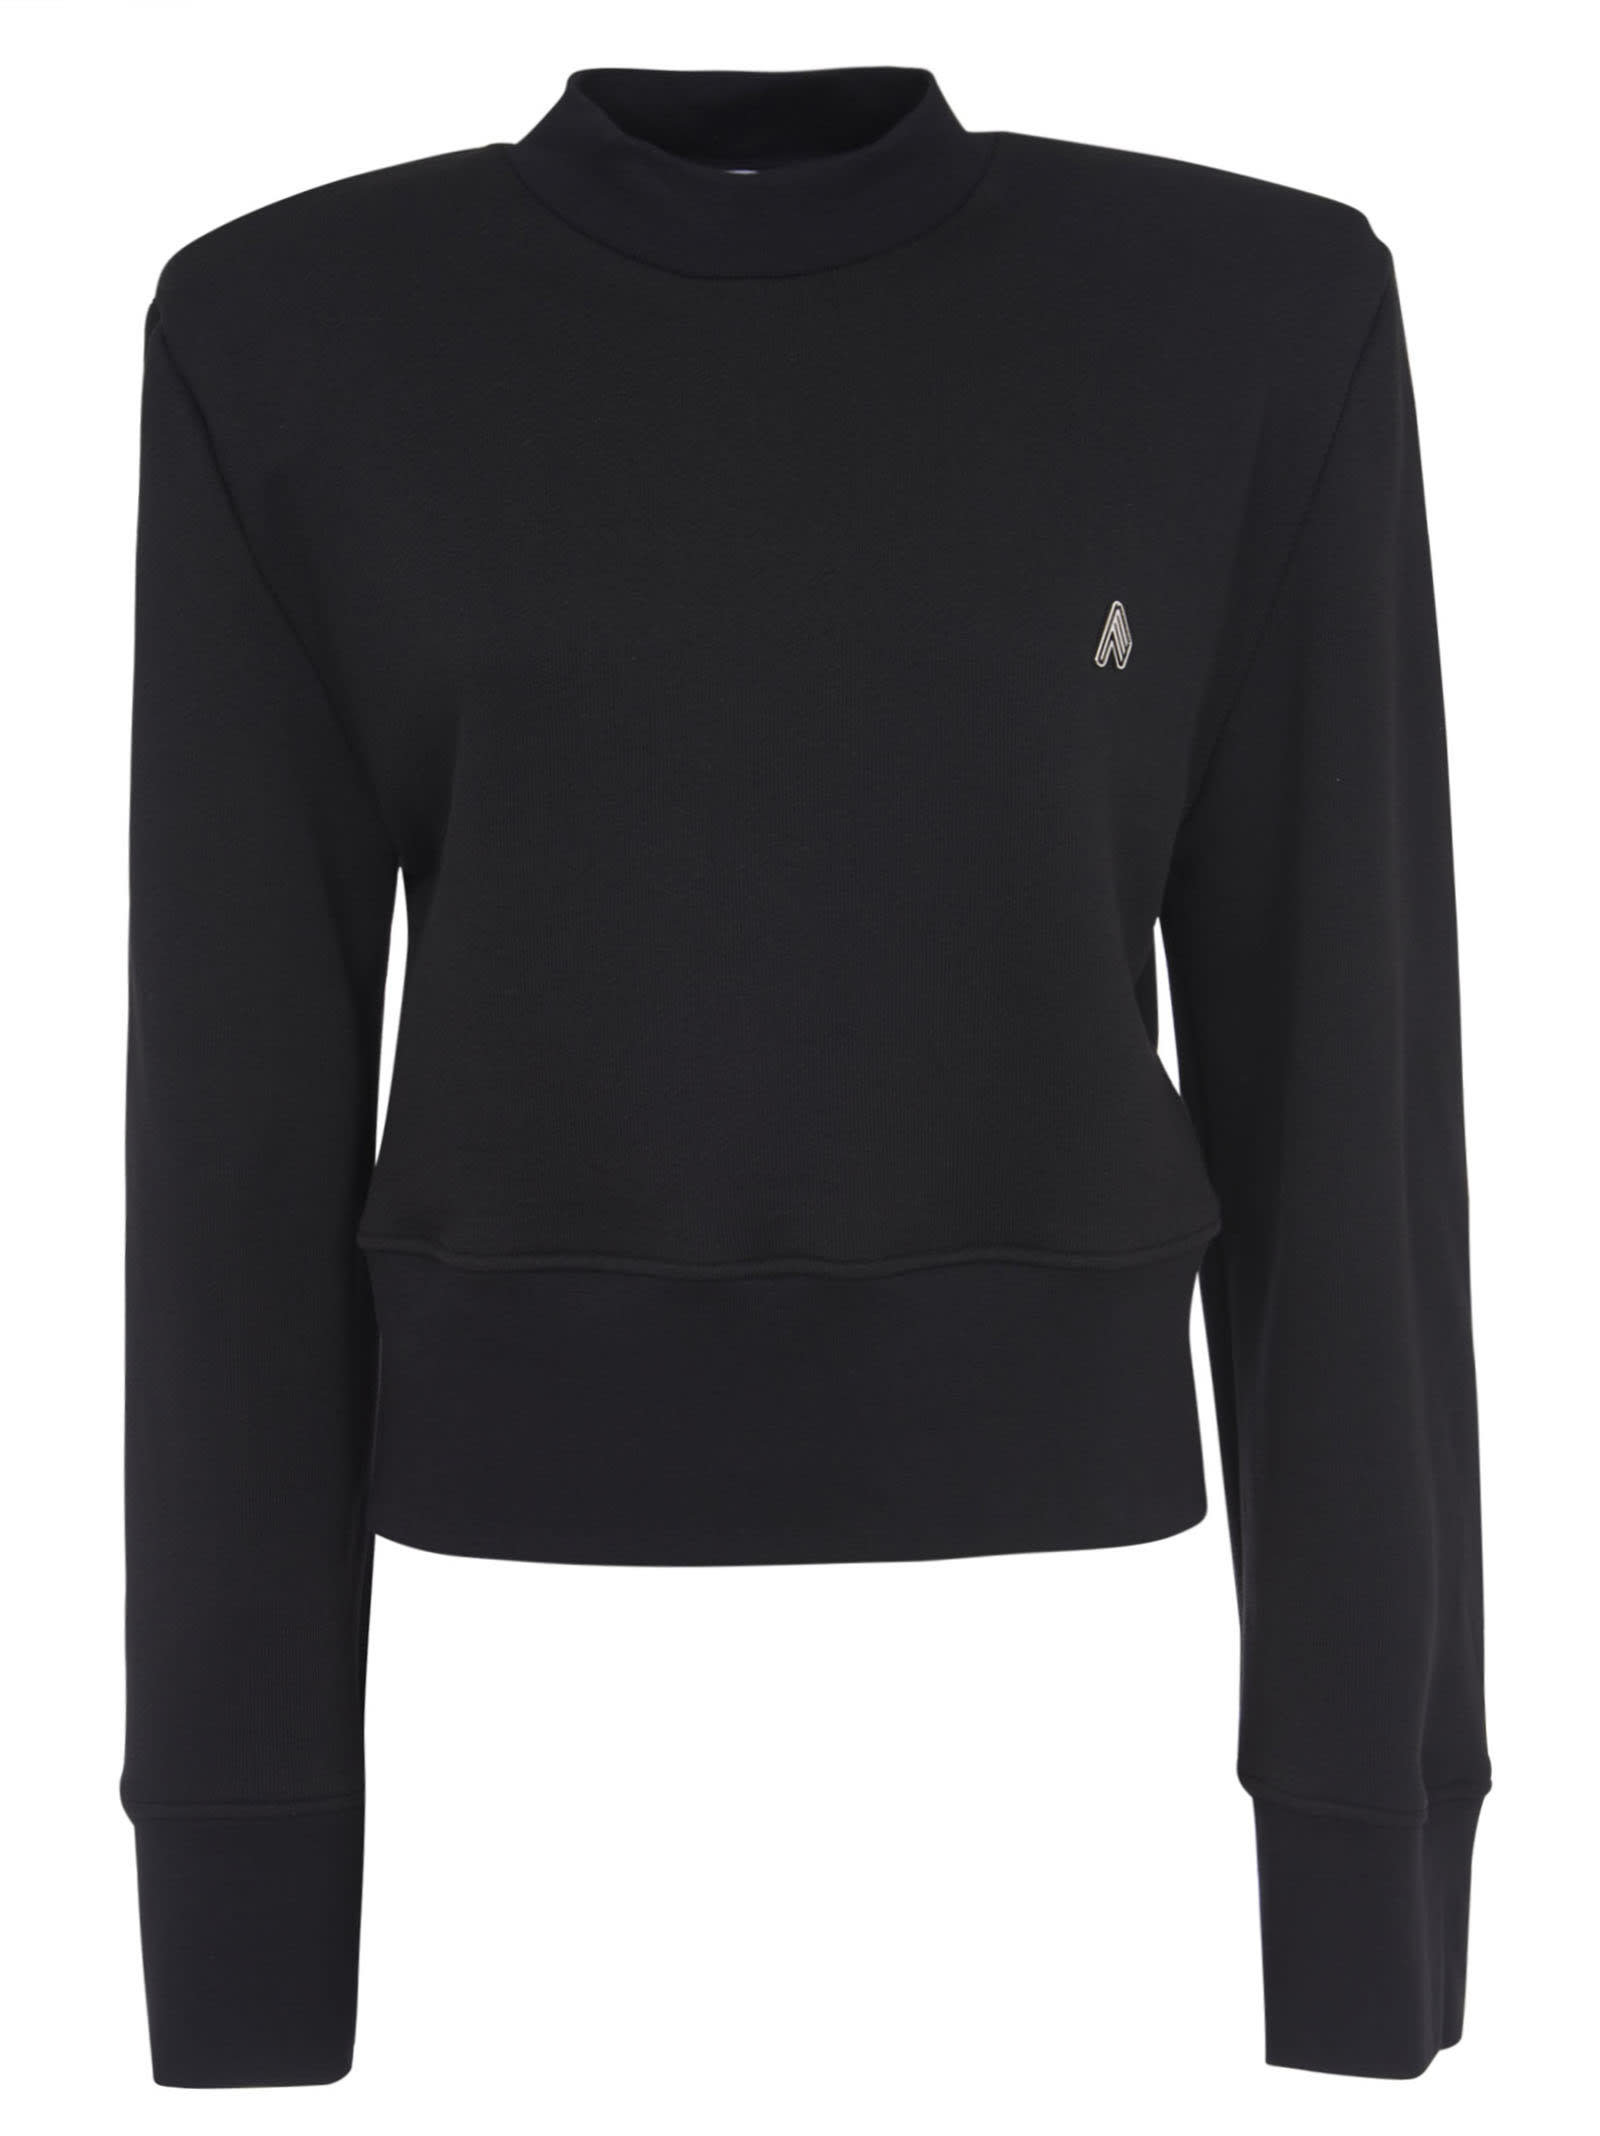 Attico CROPPED LENGTH SWEATSHIRT